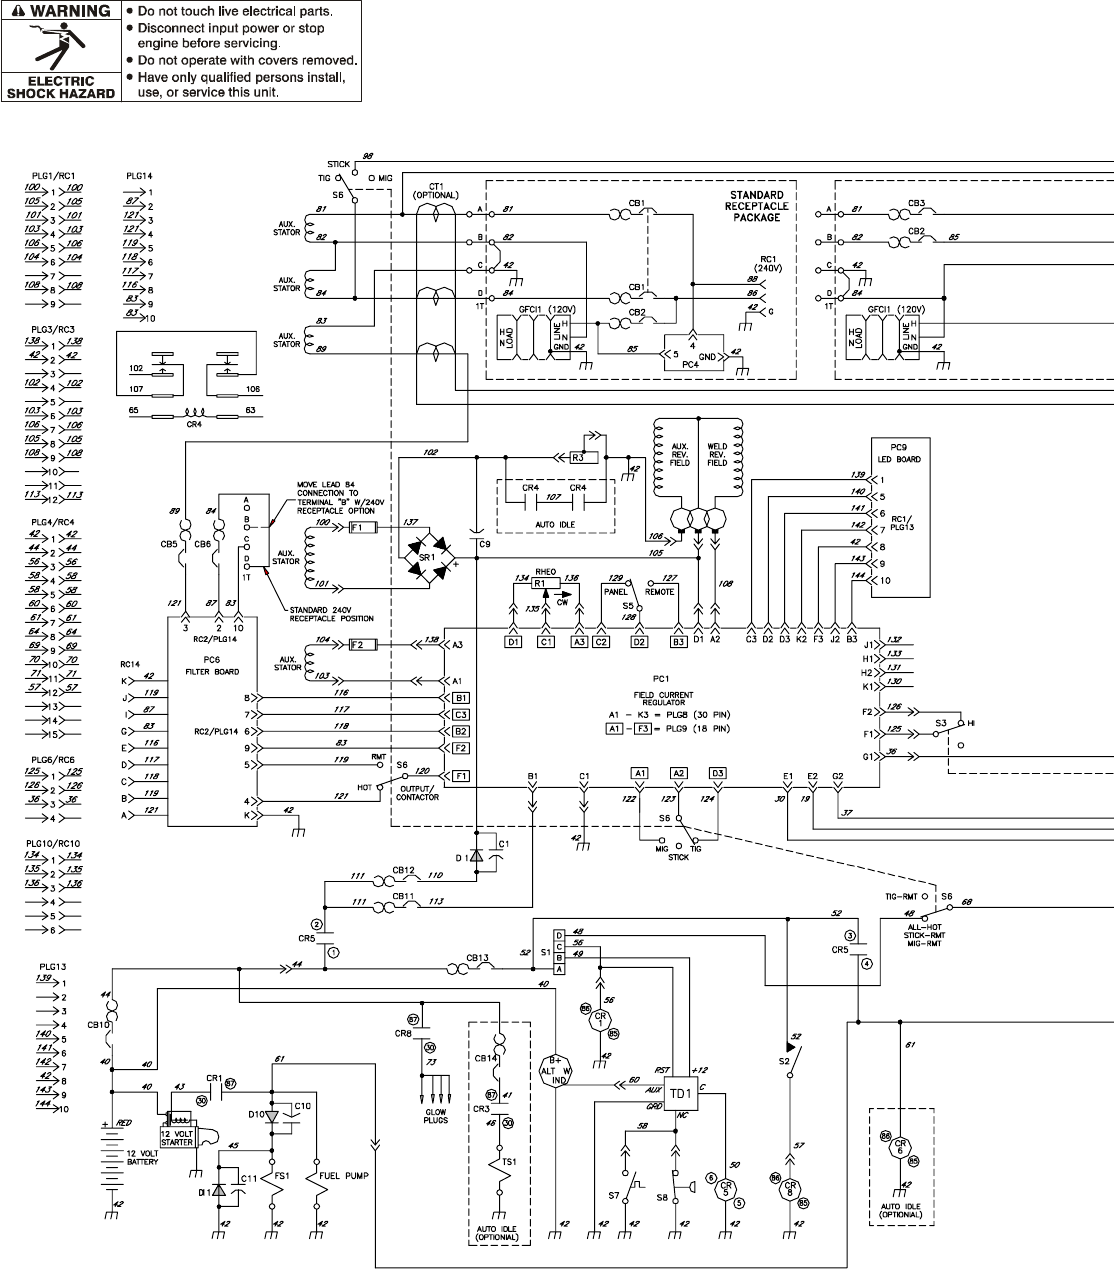 miller bobcat 250 wiring diagram html with Big Blue 400pbig Blue 500 X on Miller Bobcat Starter Wiring Diagram further  further Big blue 400pbig blue 500 x together with Lincoln Welding Parts Catalog likewise 30op0  pany 2004 S250 Cab Heater Blower Motor.